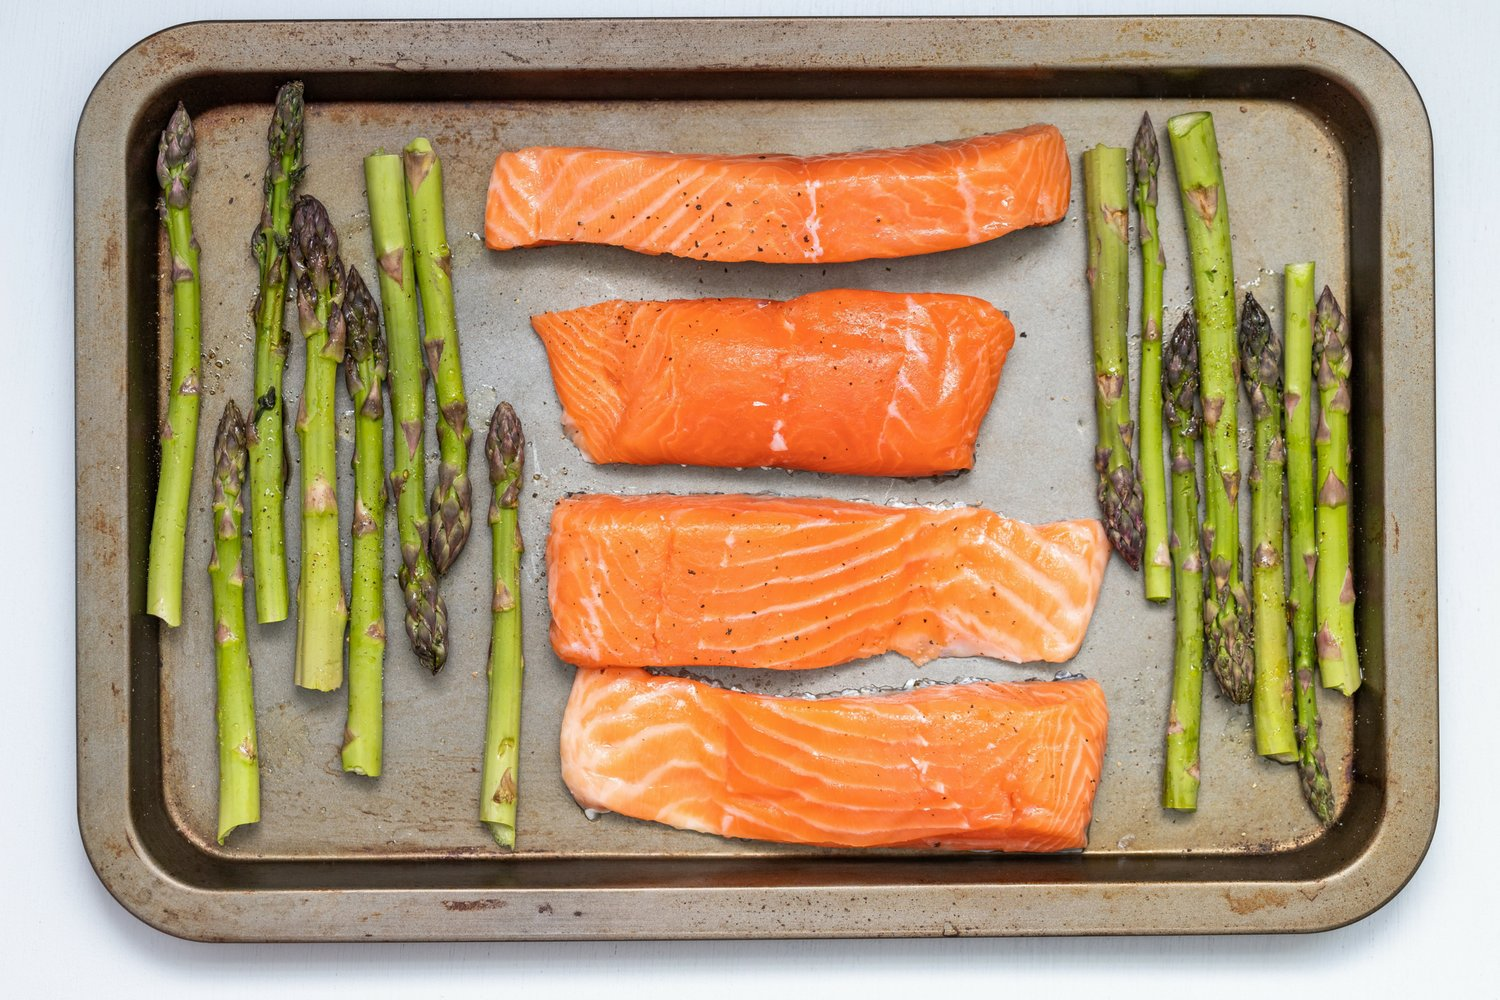 Salmon recipe with asparagus on a sheet pan.